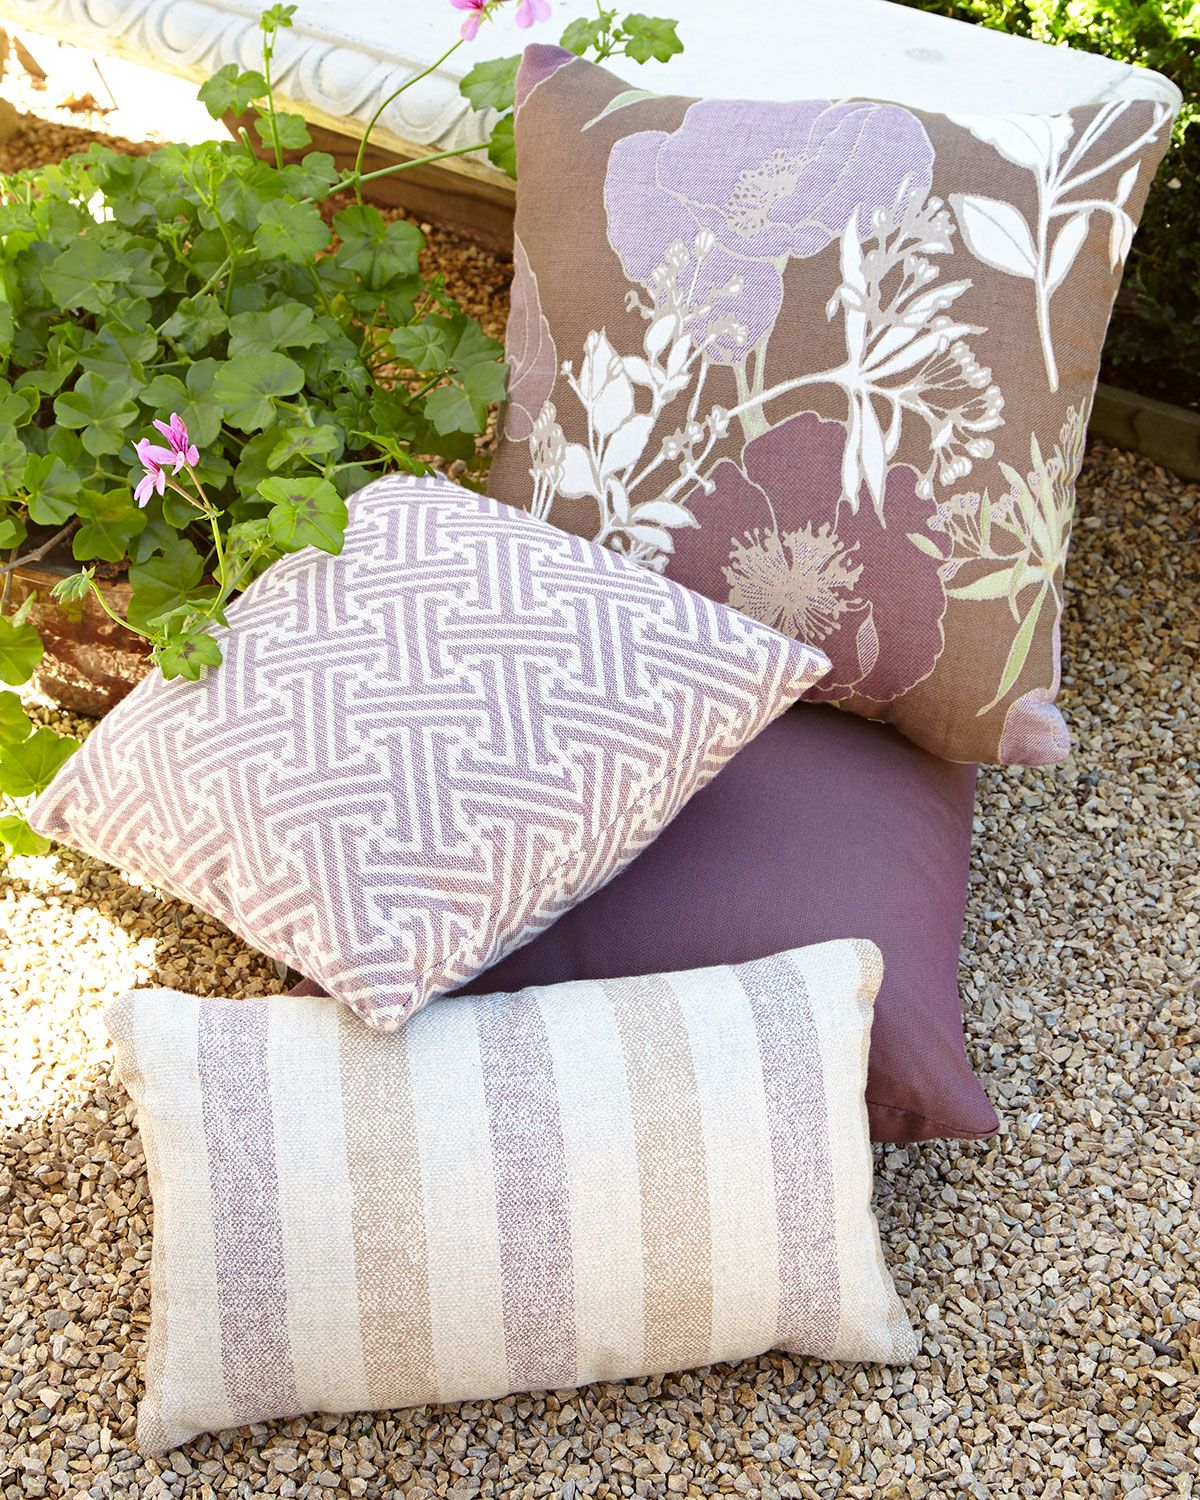 Harrison vesper pillows pillows and throw pillows